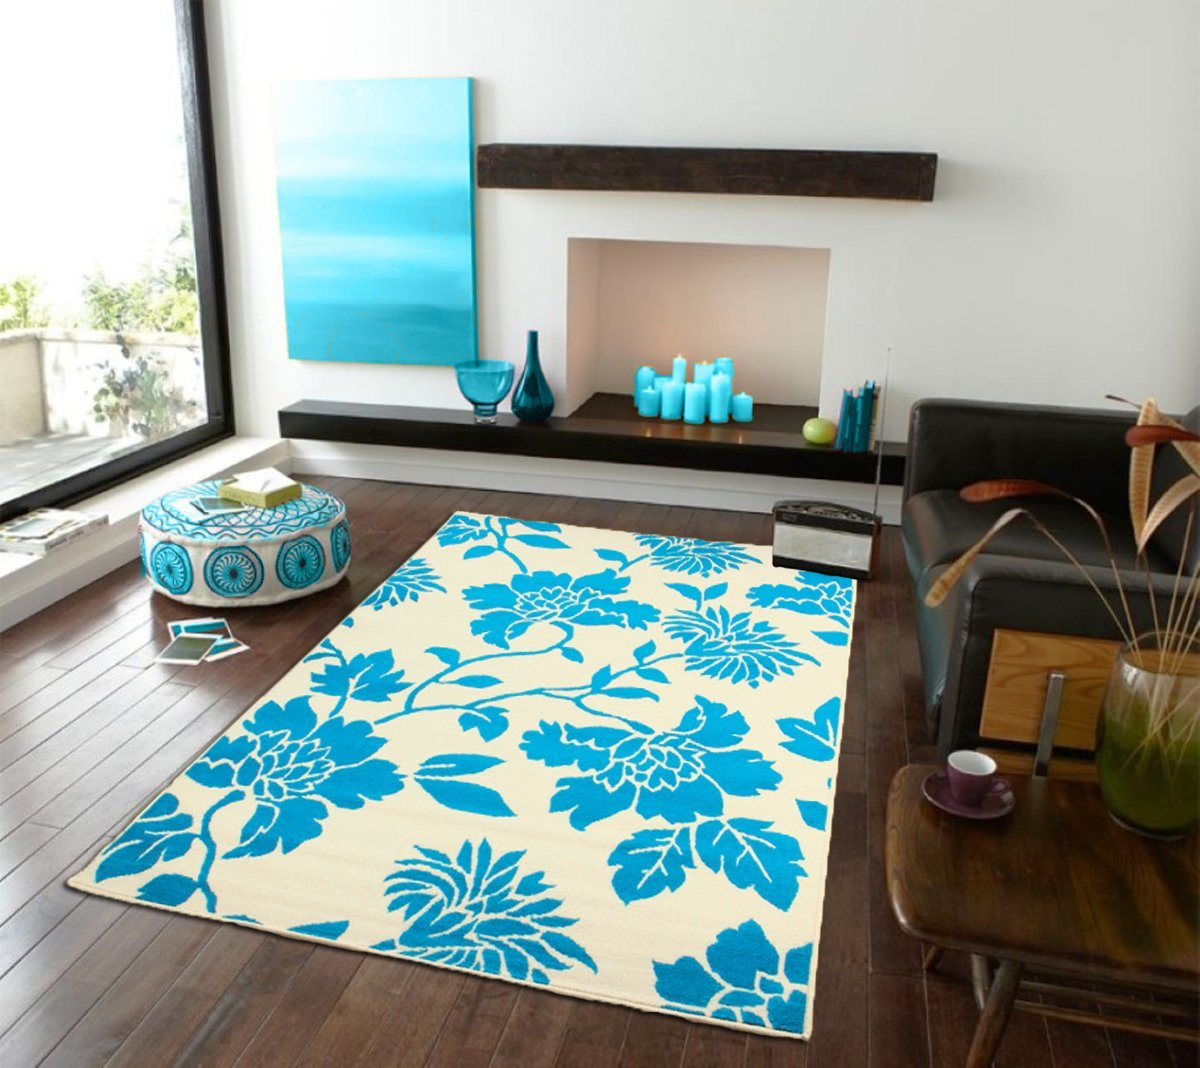 Cheap 5x8 Area Rugs Find 5x8 Area Rugs Deals On Line At Alibaba Com